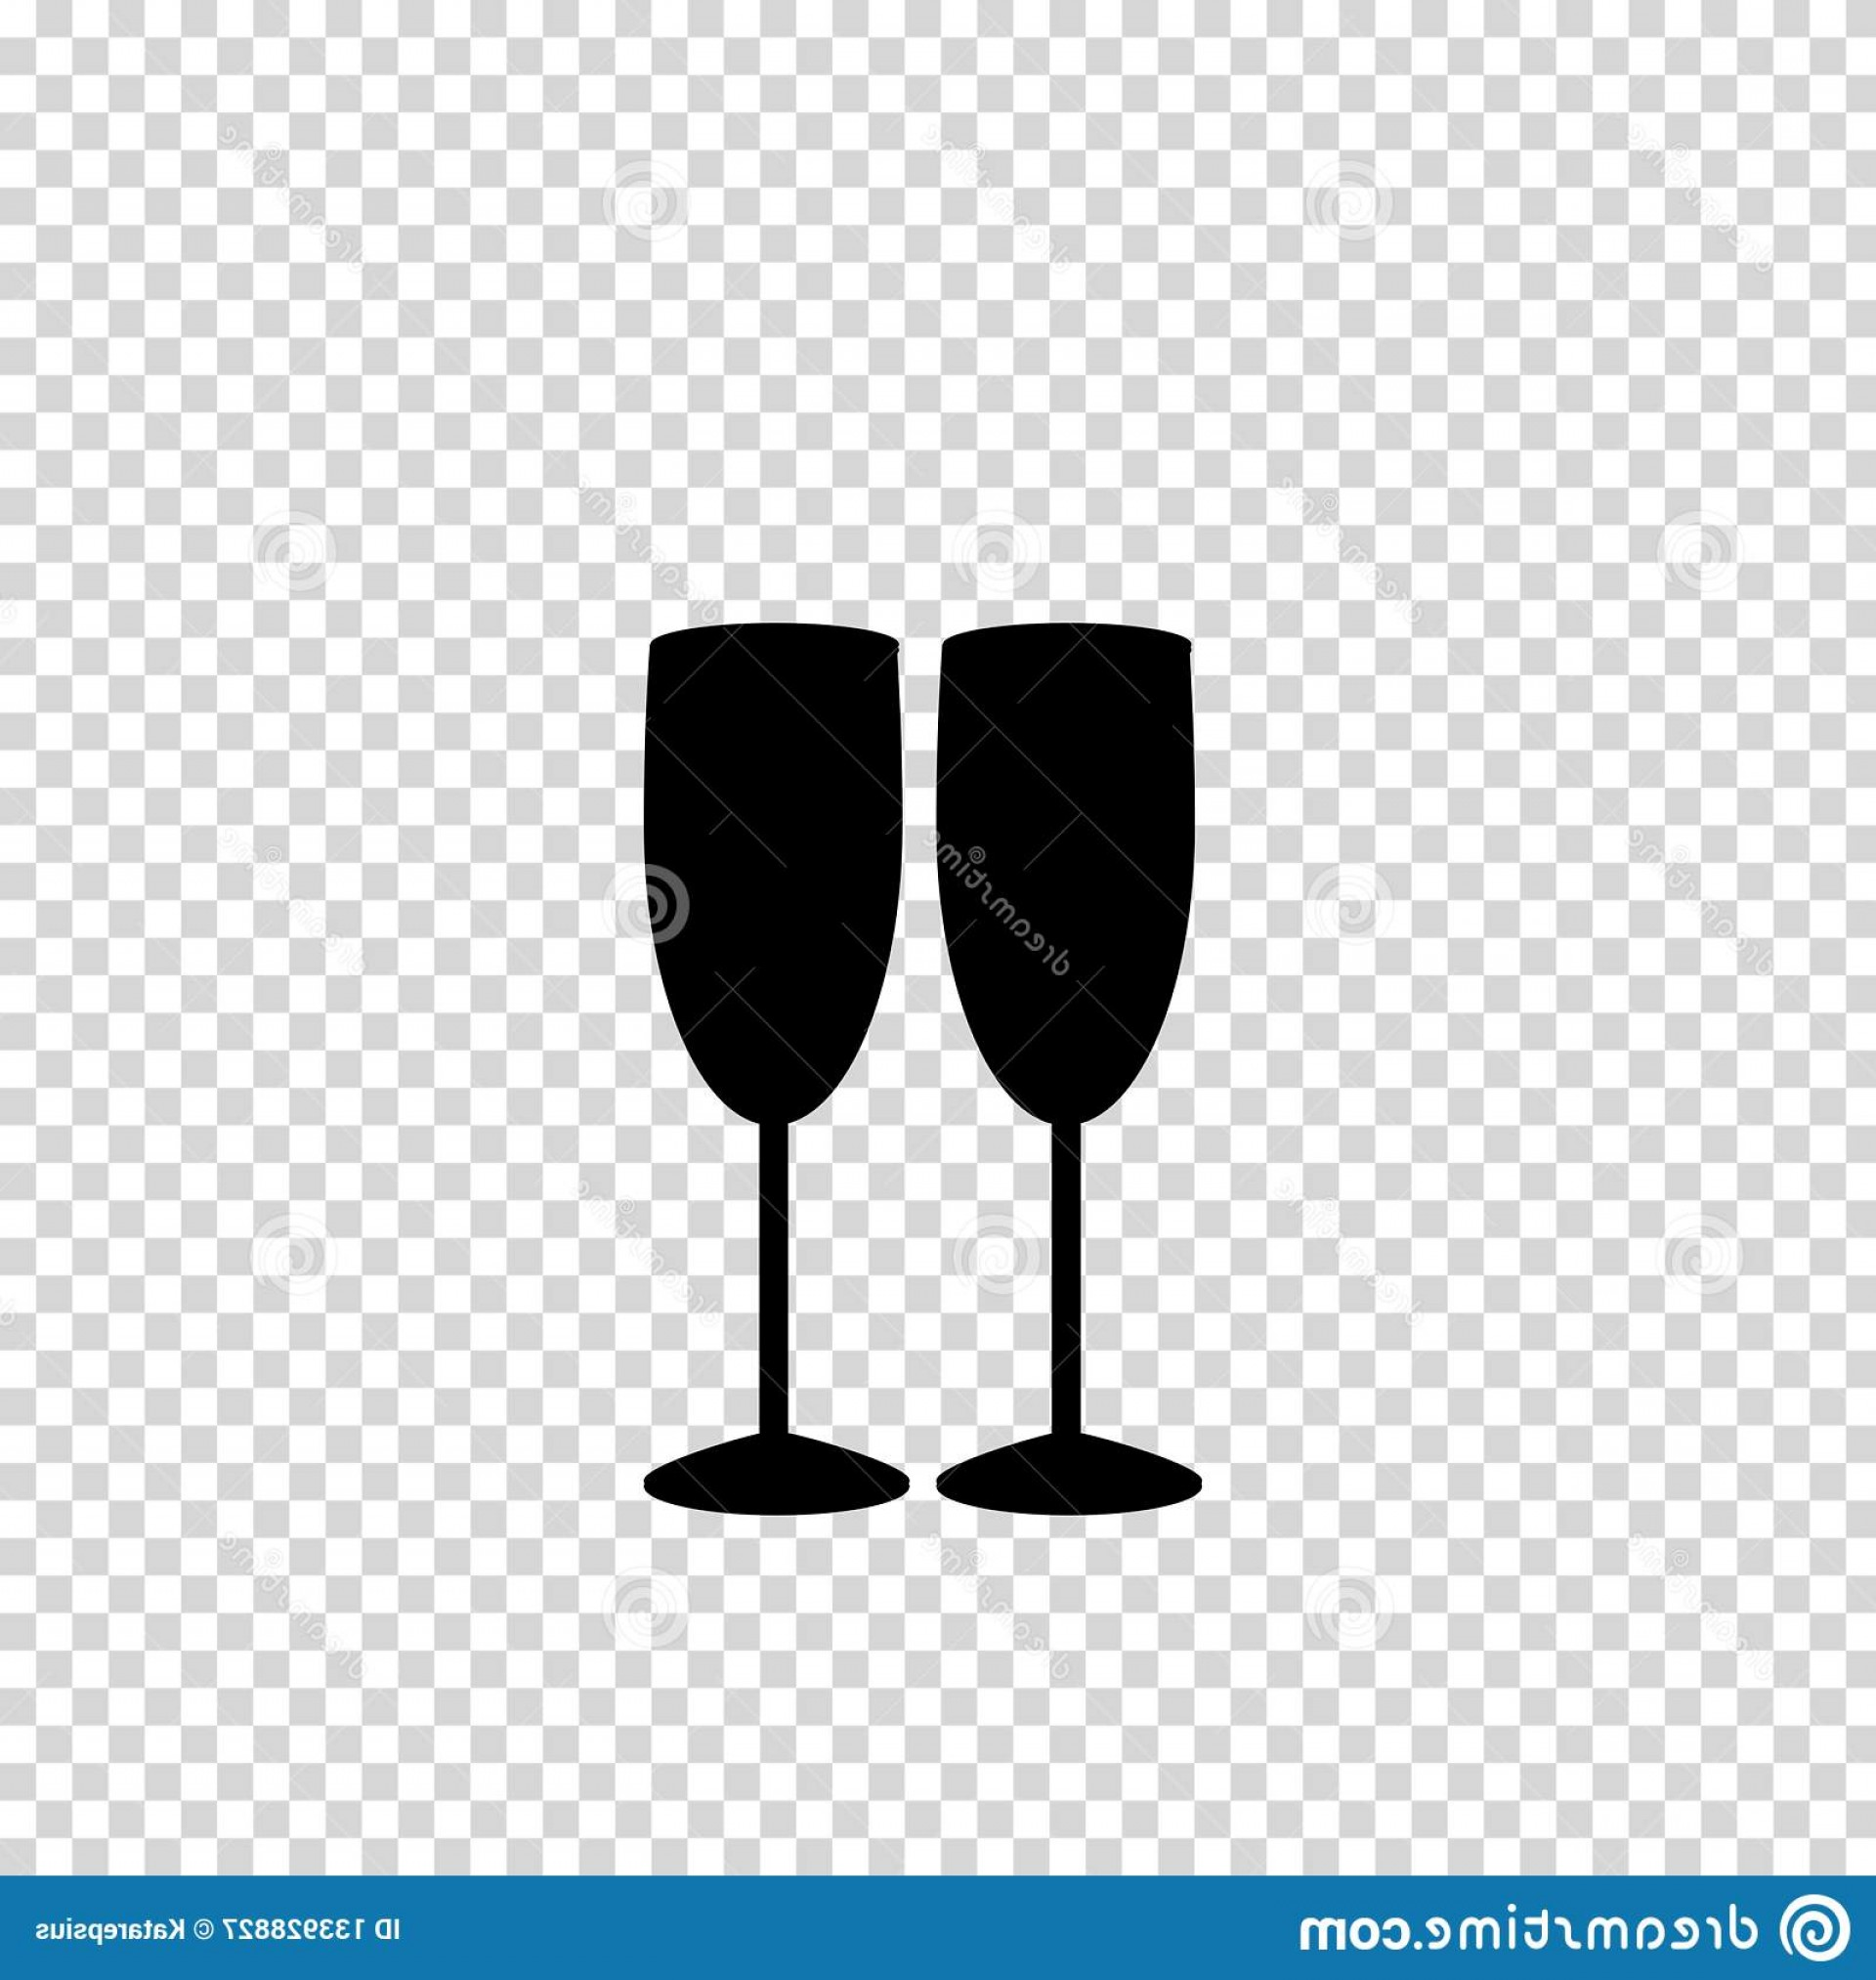 Single Wine Glass Silhouette Vector: Vector Black Silhouette Couple Wine Glasses Isolated Monochrome Illustration Two Champaign Champagne Cheers Icon Fragile Image